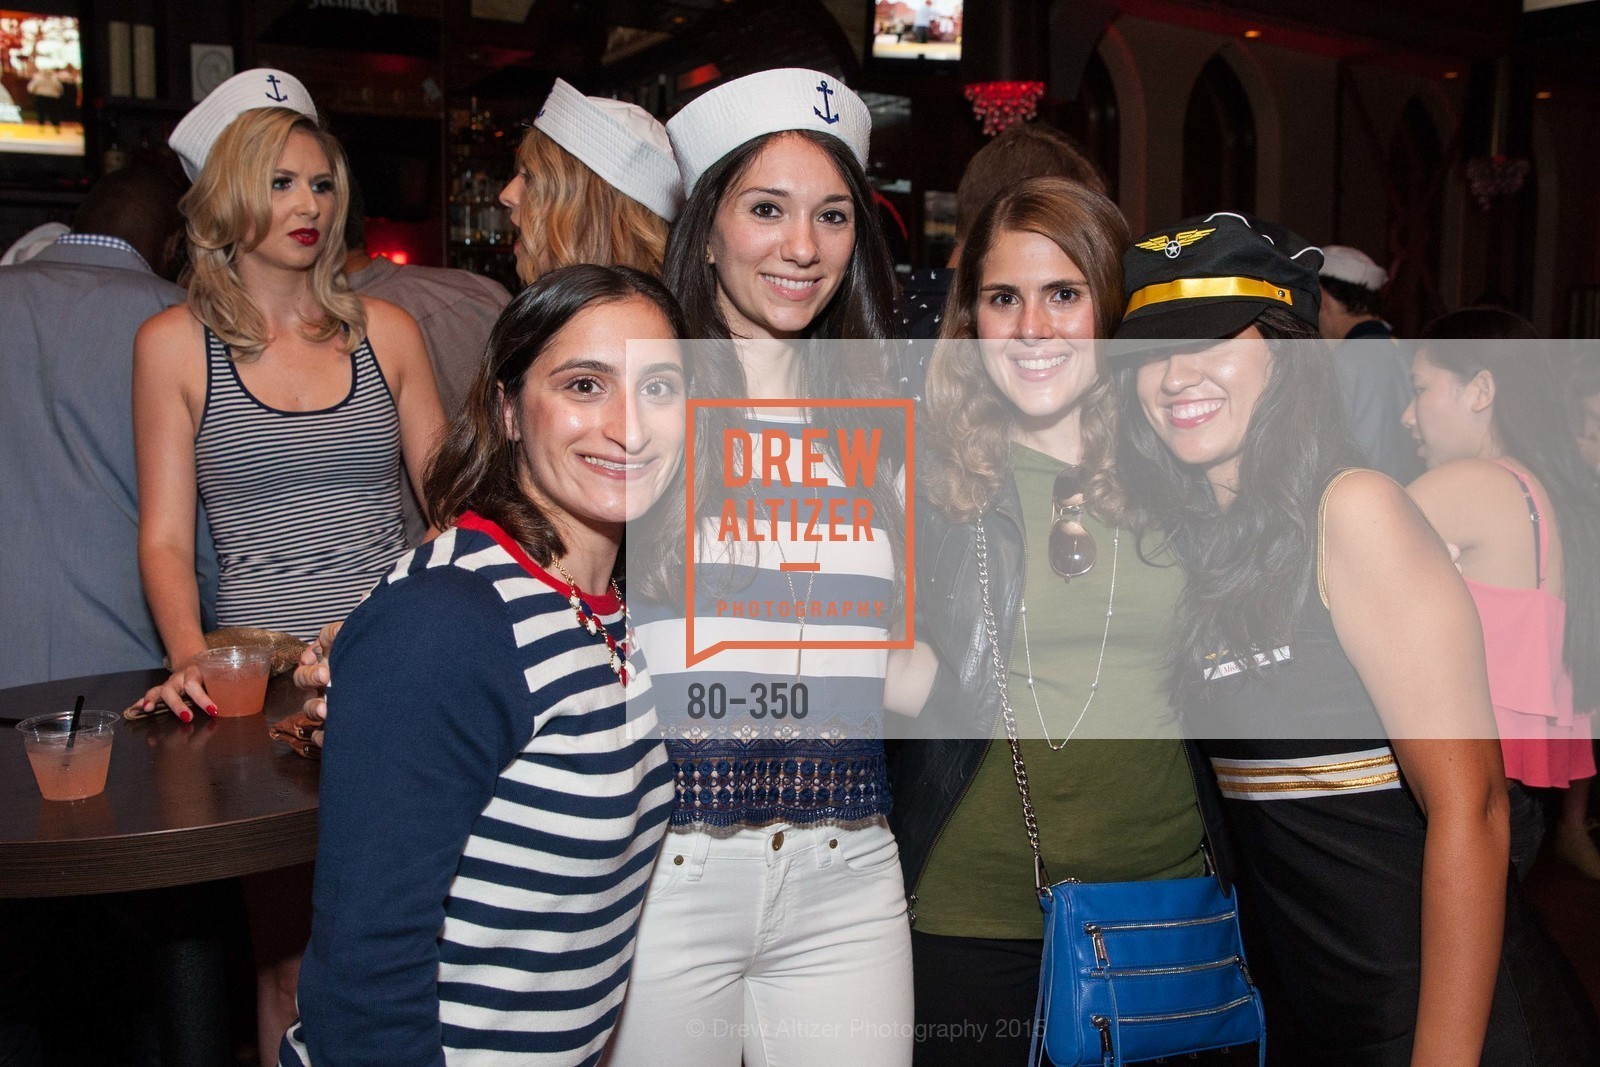 Anne Warda, Genevieve Meyers, Cailin Todd, Janine Padilla, Spinsters of San Francisco Presents: Fleet or Flight, Mayes Oyster House. 1233 Polk St, October 9th, 2015,Drew Altizer, Drew Altizer Photography, full-service agency, private events, San Francisco photographer, photographer california